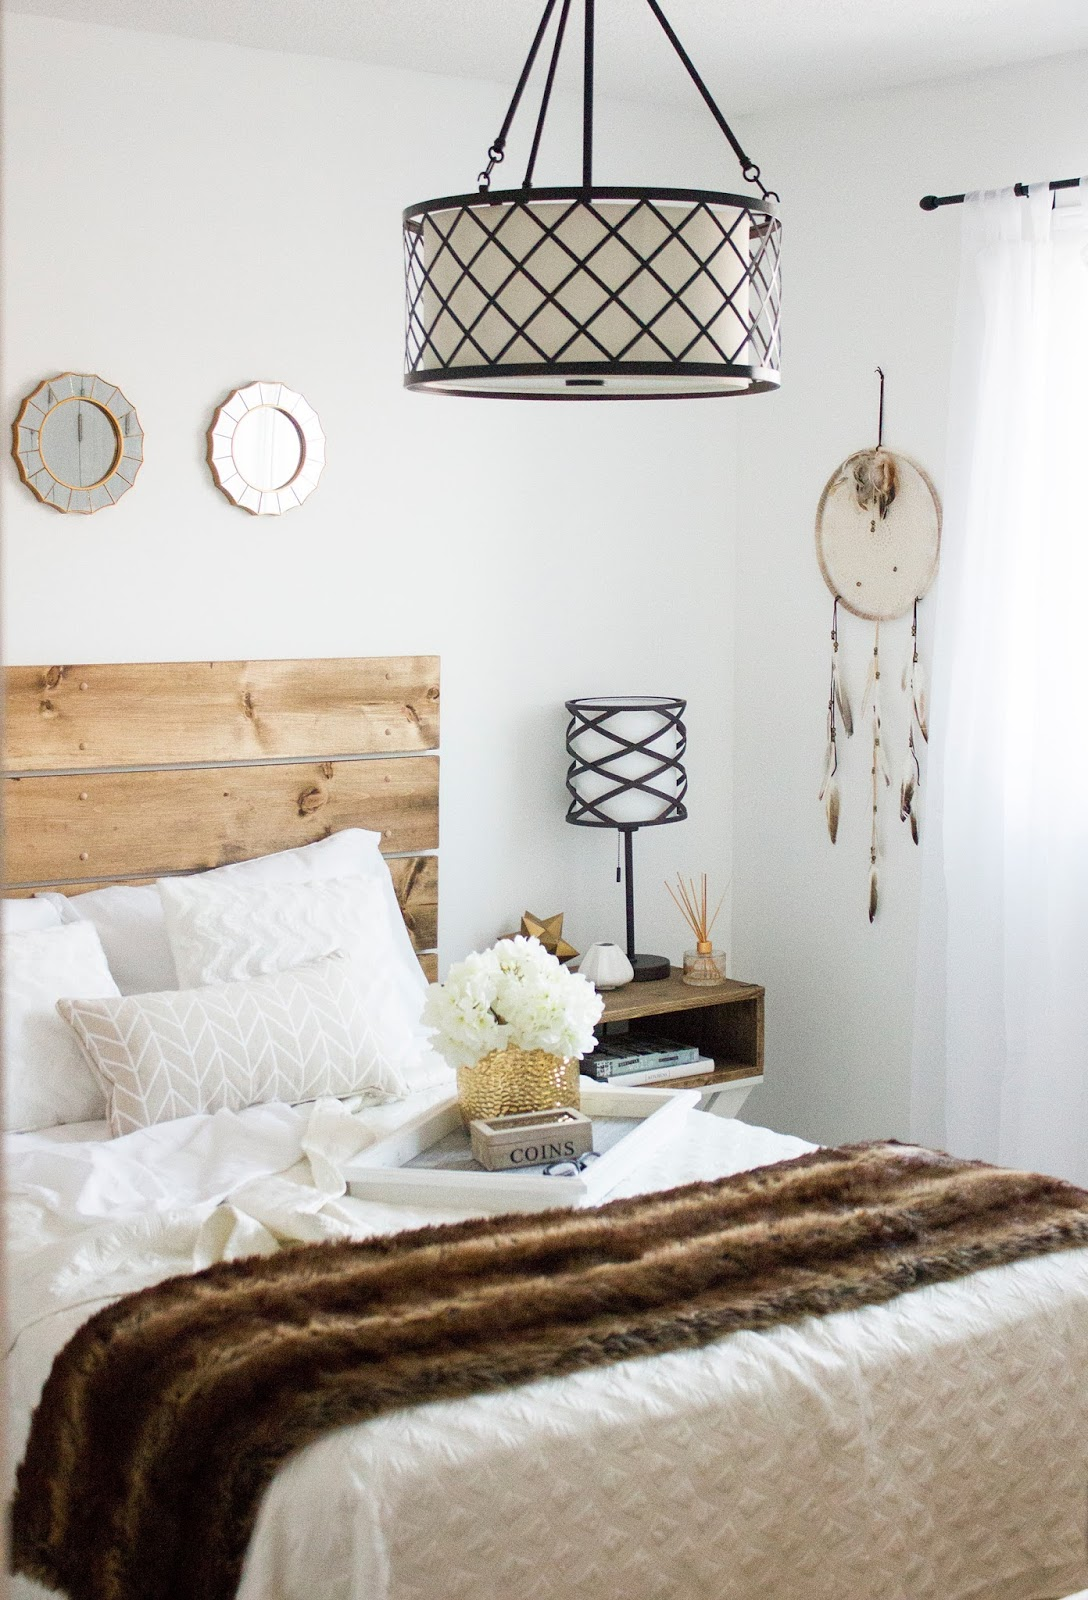 How To Build Diy X Stand Nightstands And A Headboard